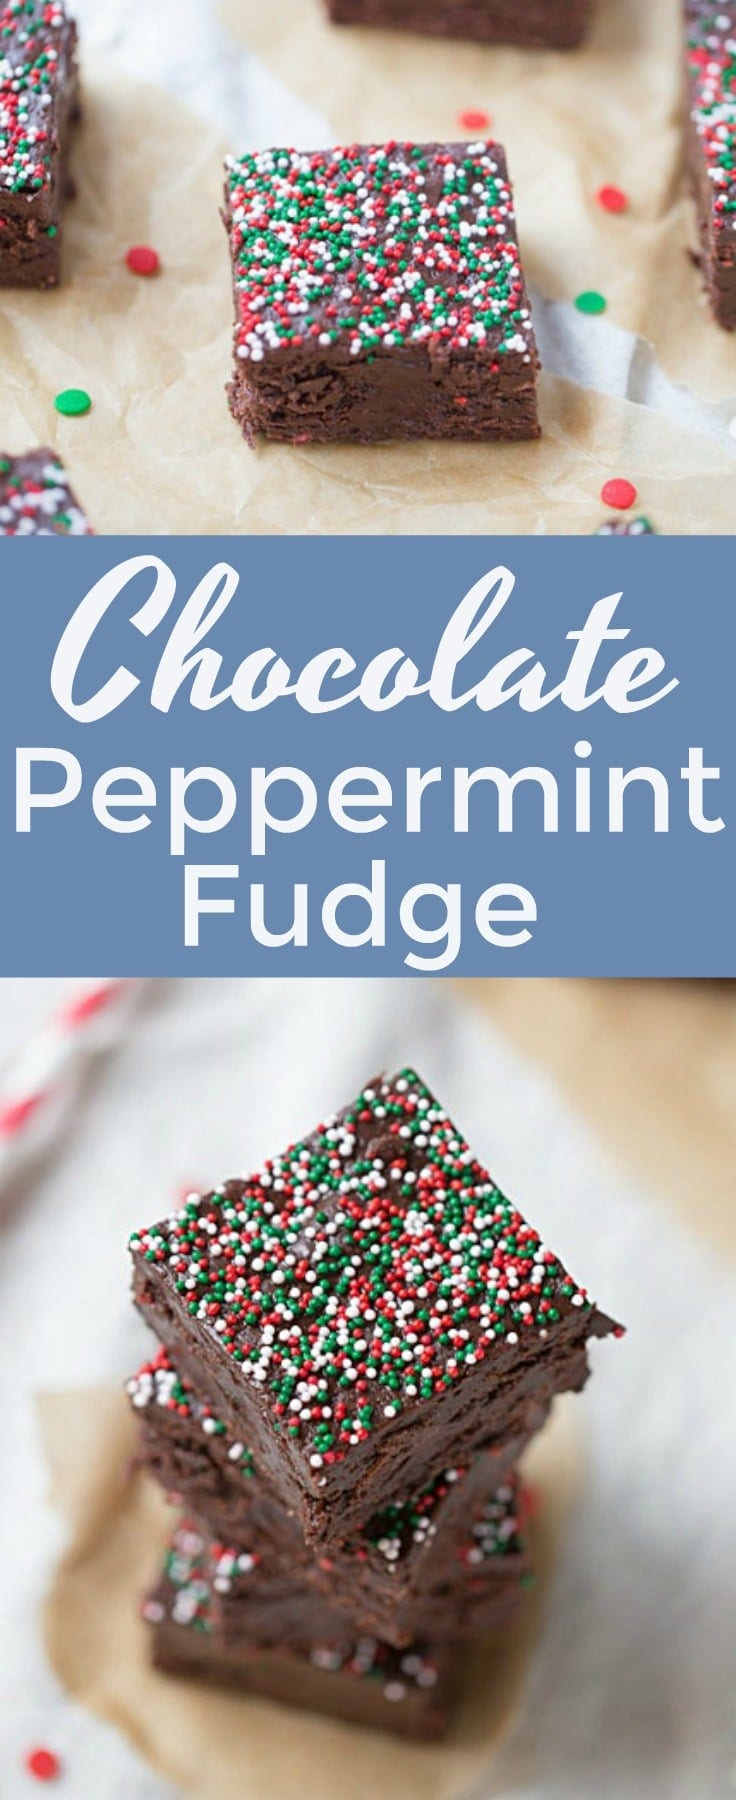 Chocolate Peppermint Fudge is AMAZING! One of my favorite #christmas treats. I love sharing it with my friends! #recipe #fudge #dessert #sweettreats